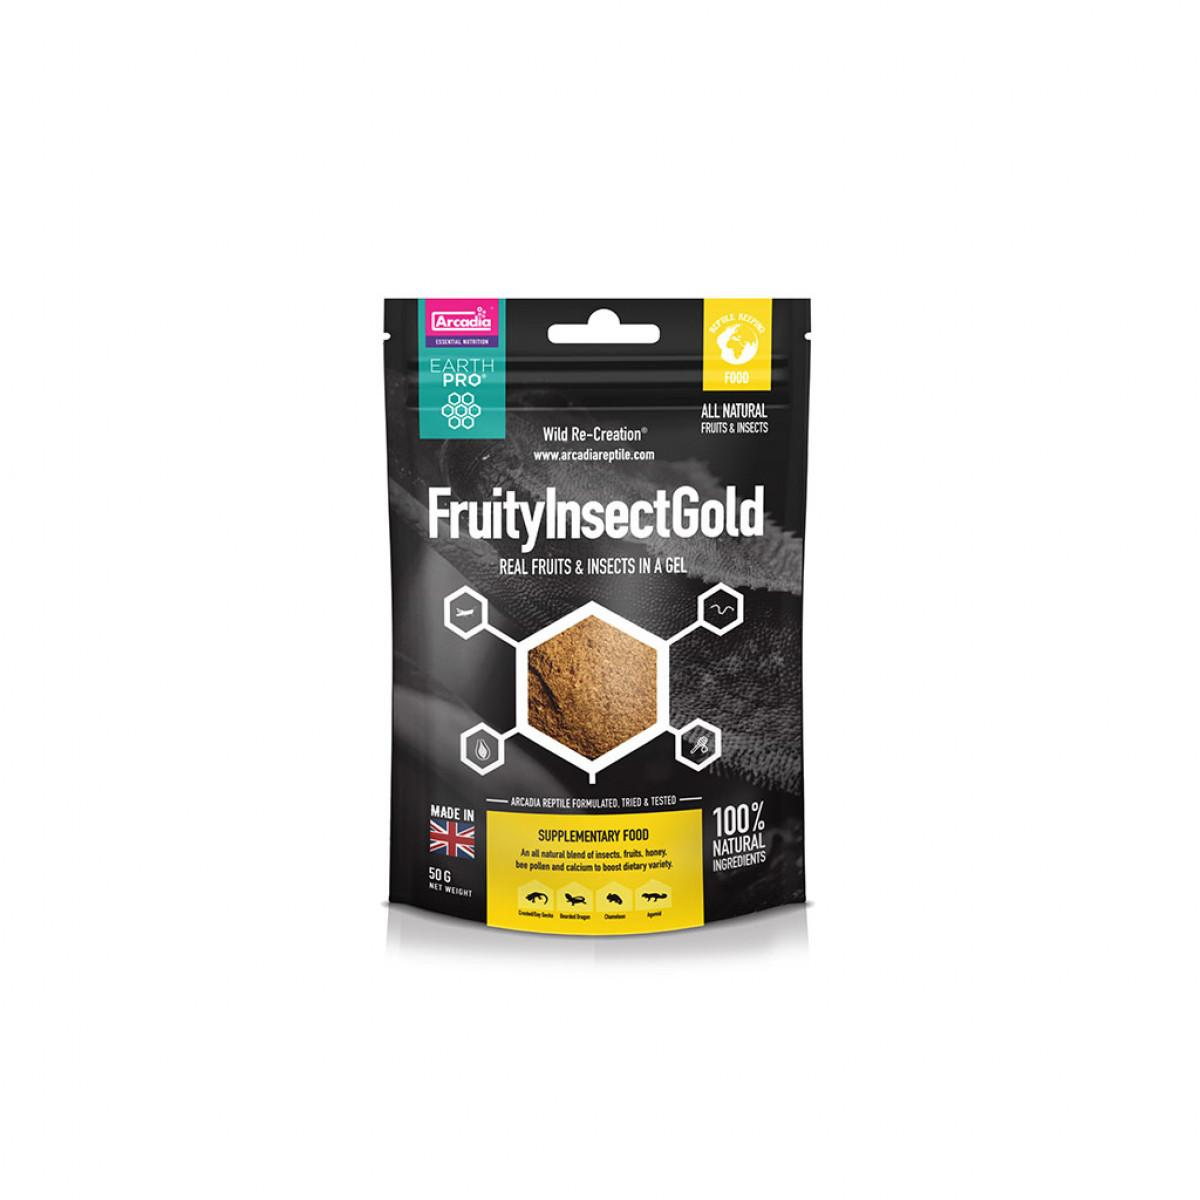 Arcadia earth pro jellypot gold fruityinsect gold 50g